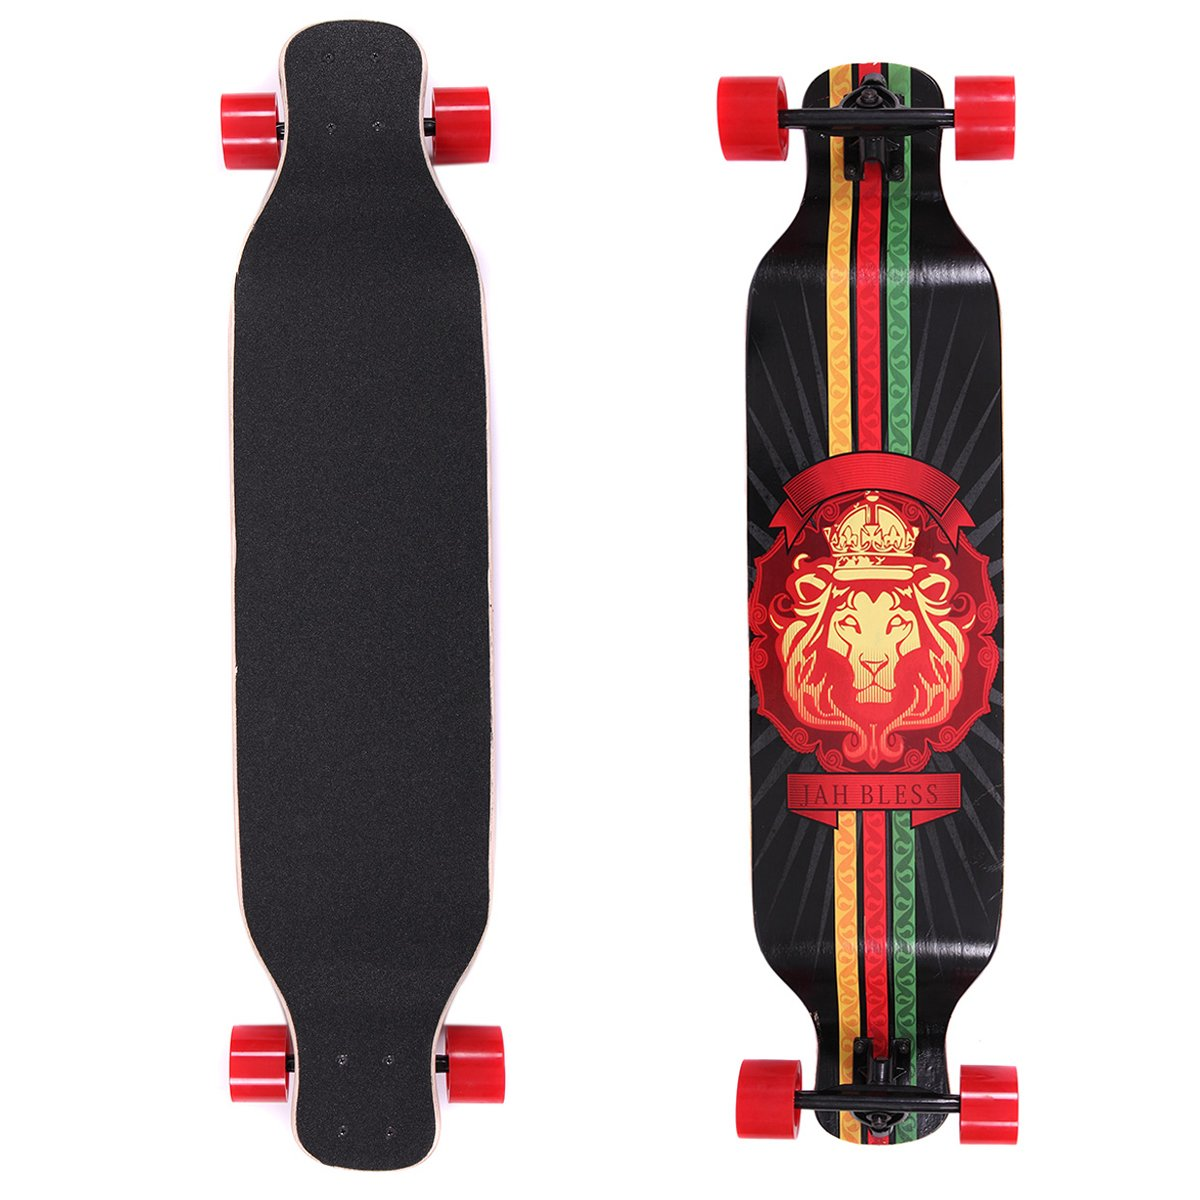 LAZYMOON Maple Complete Longboard Skateboard, 41-Inch by LAZYMOON